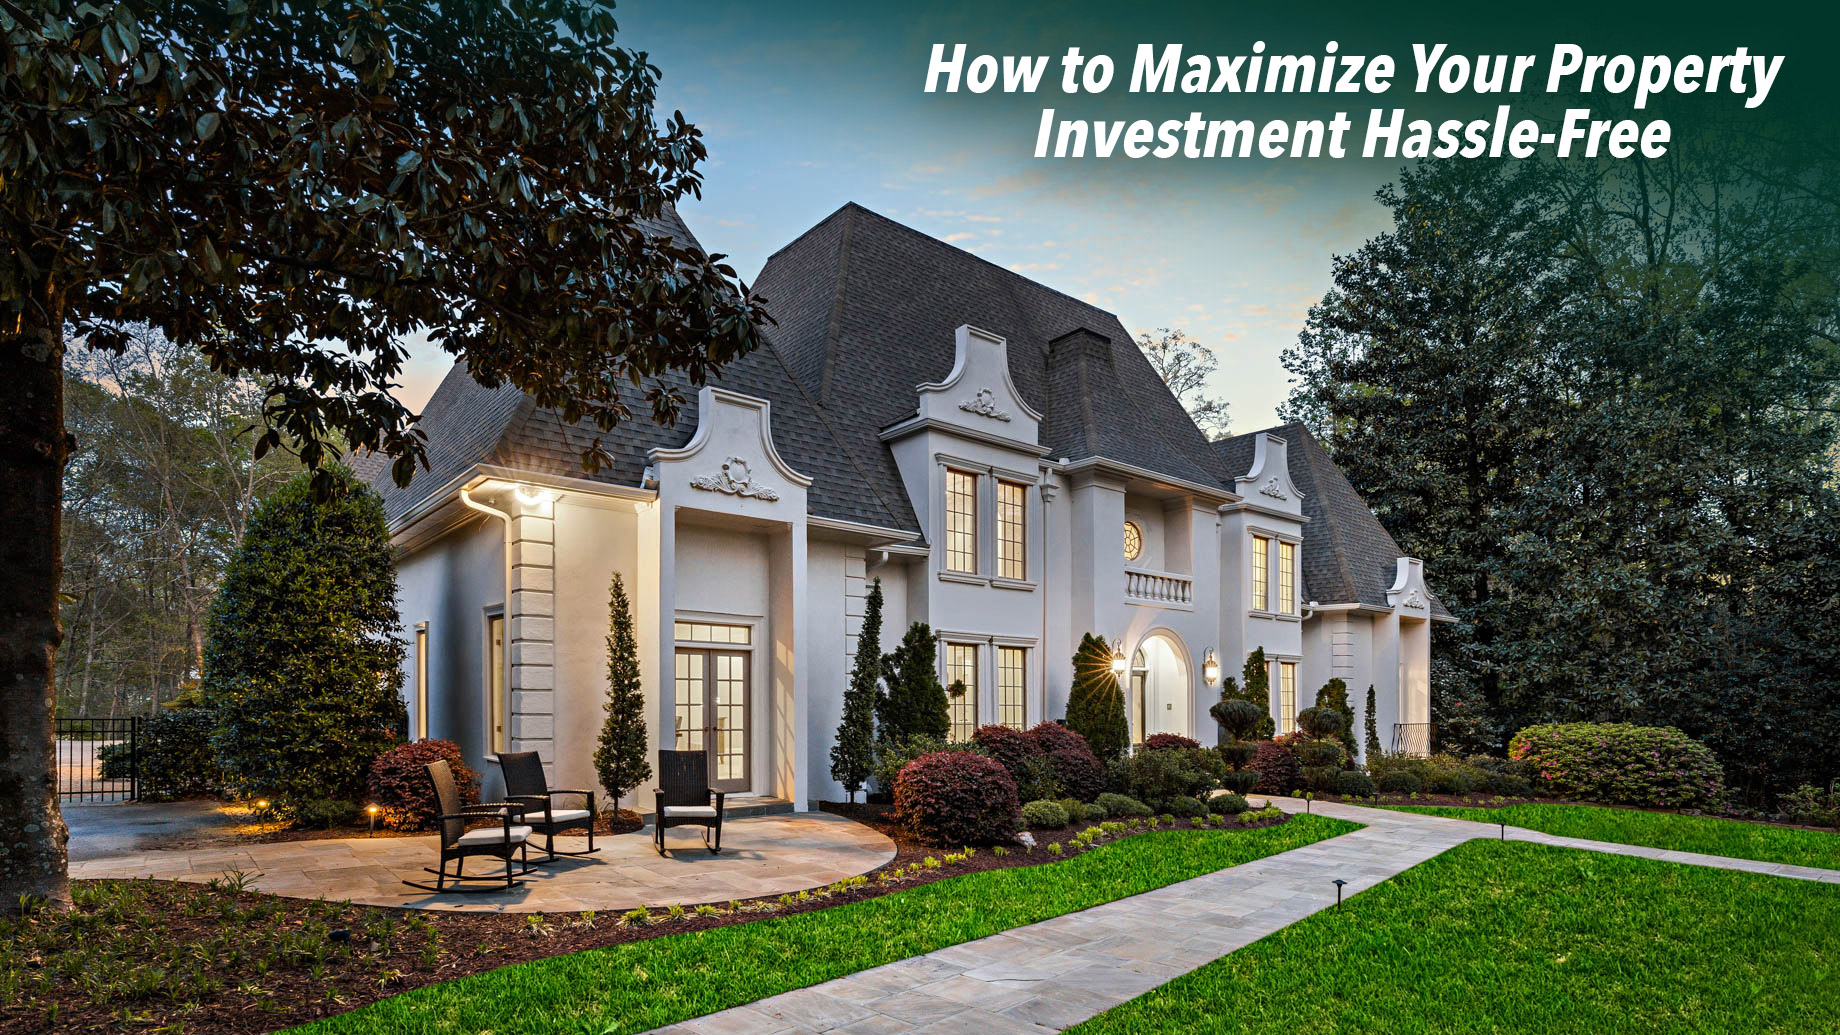 How to Maximize Your Property Investment Hassle-Free